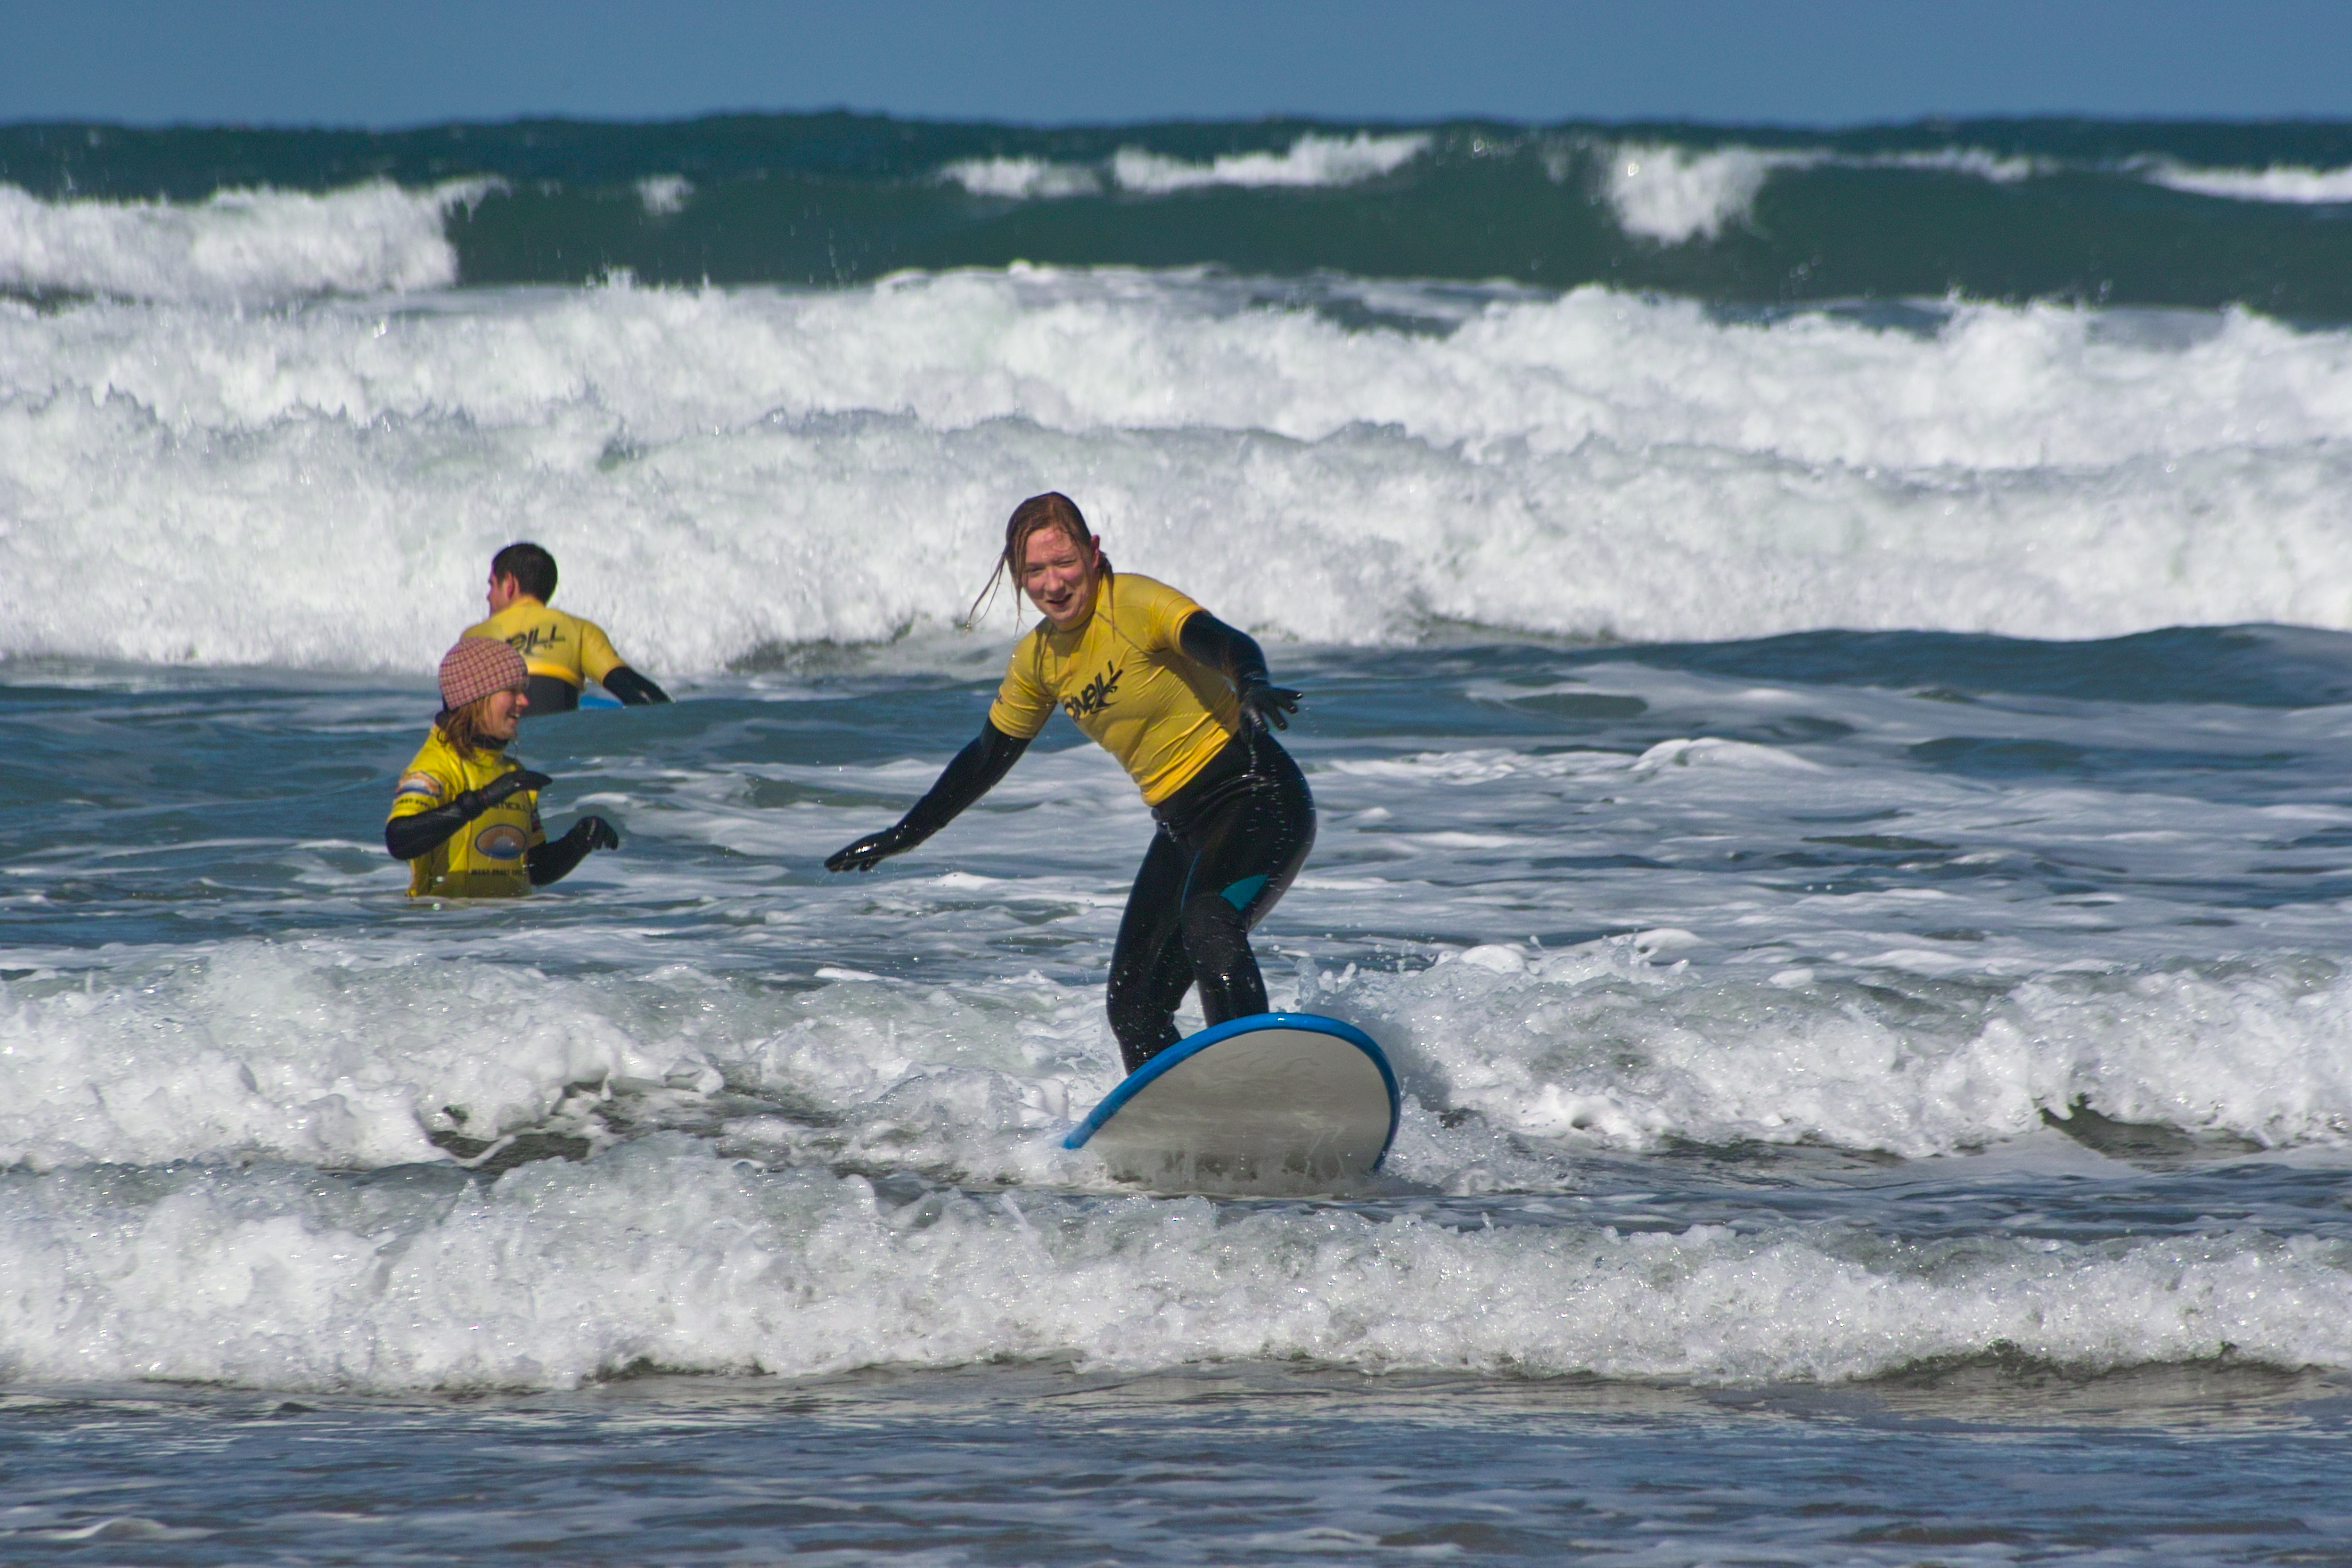 Surfing at Watergate Bay, Newquay